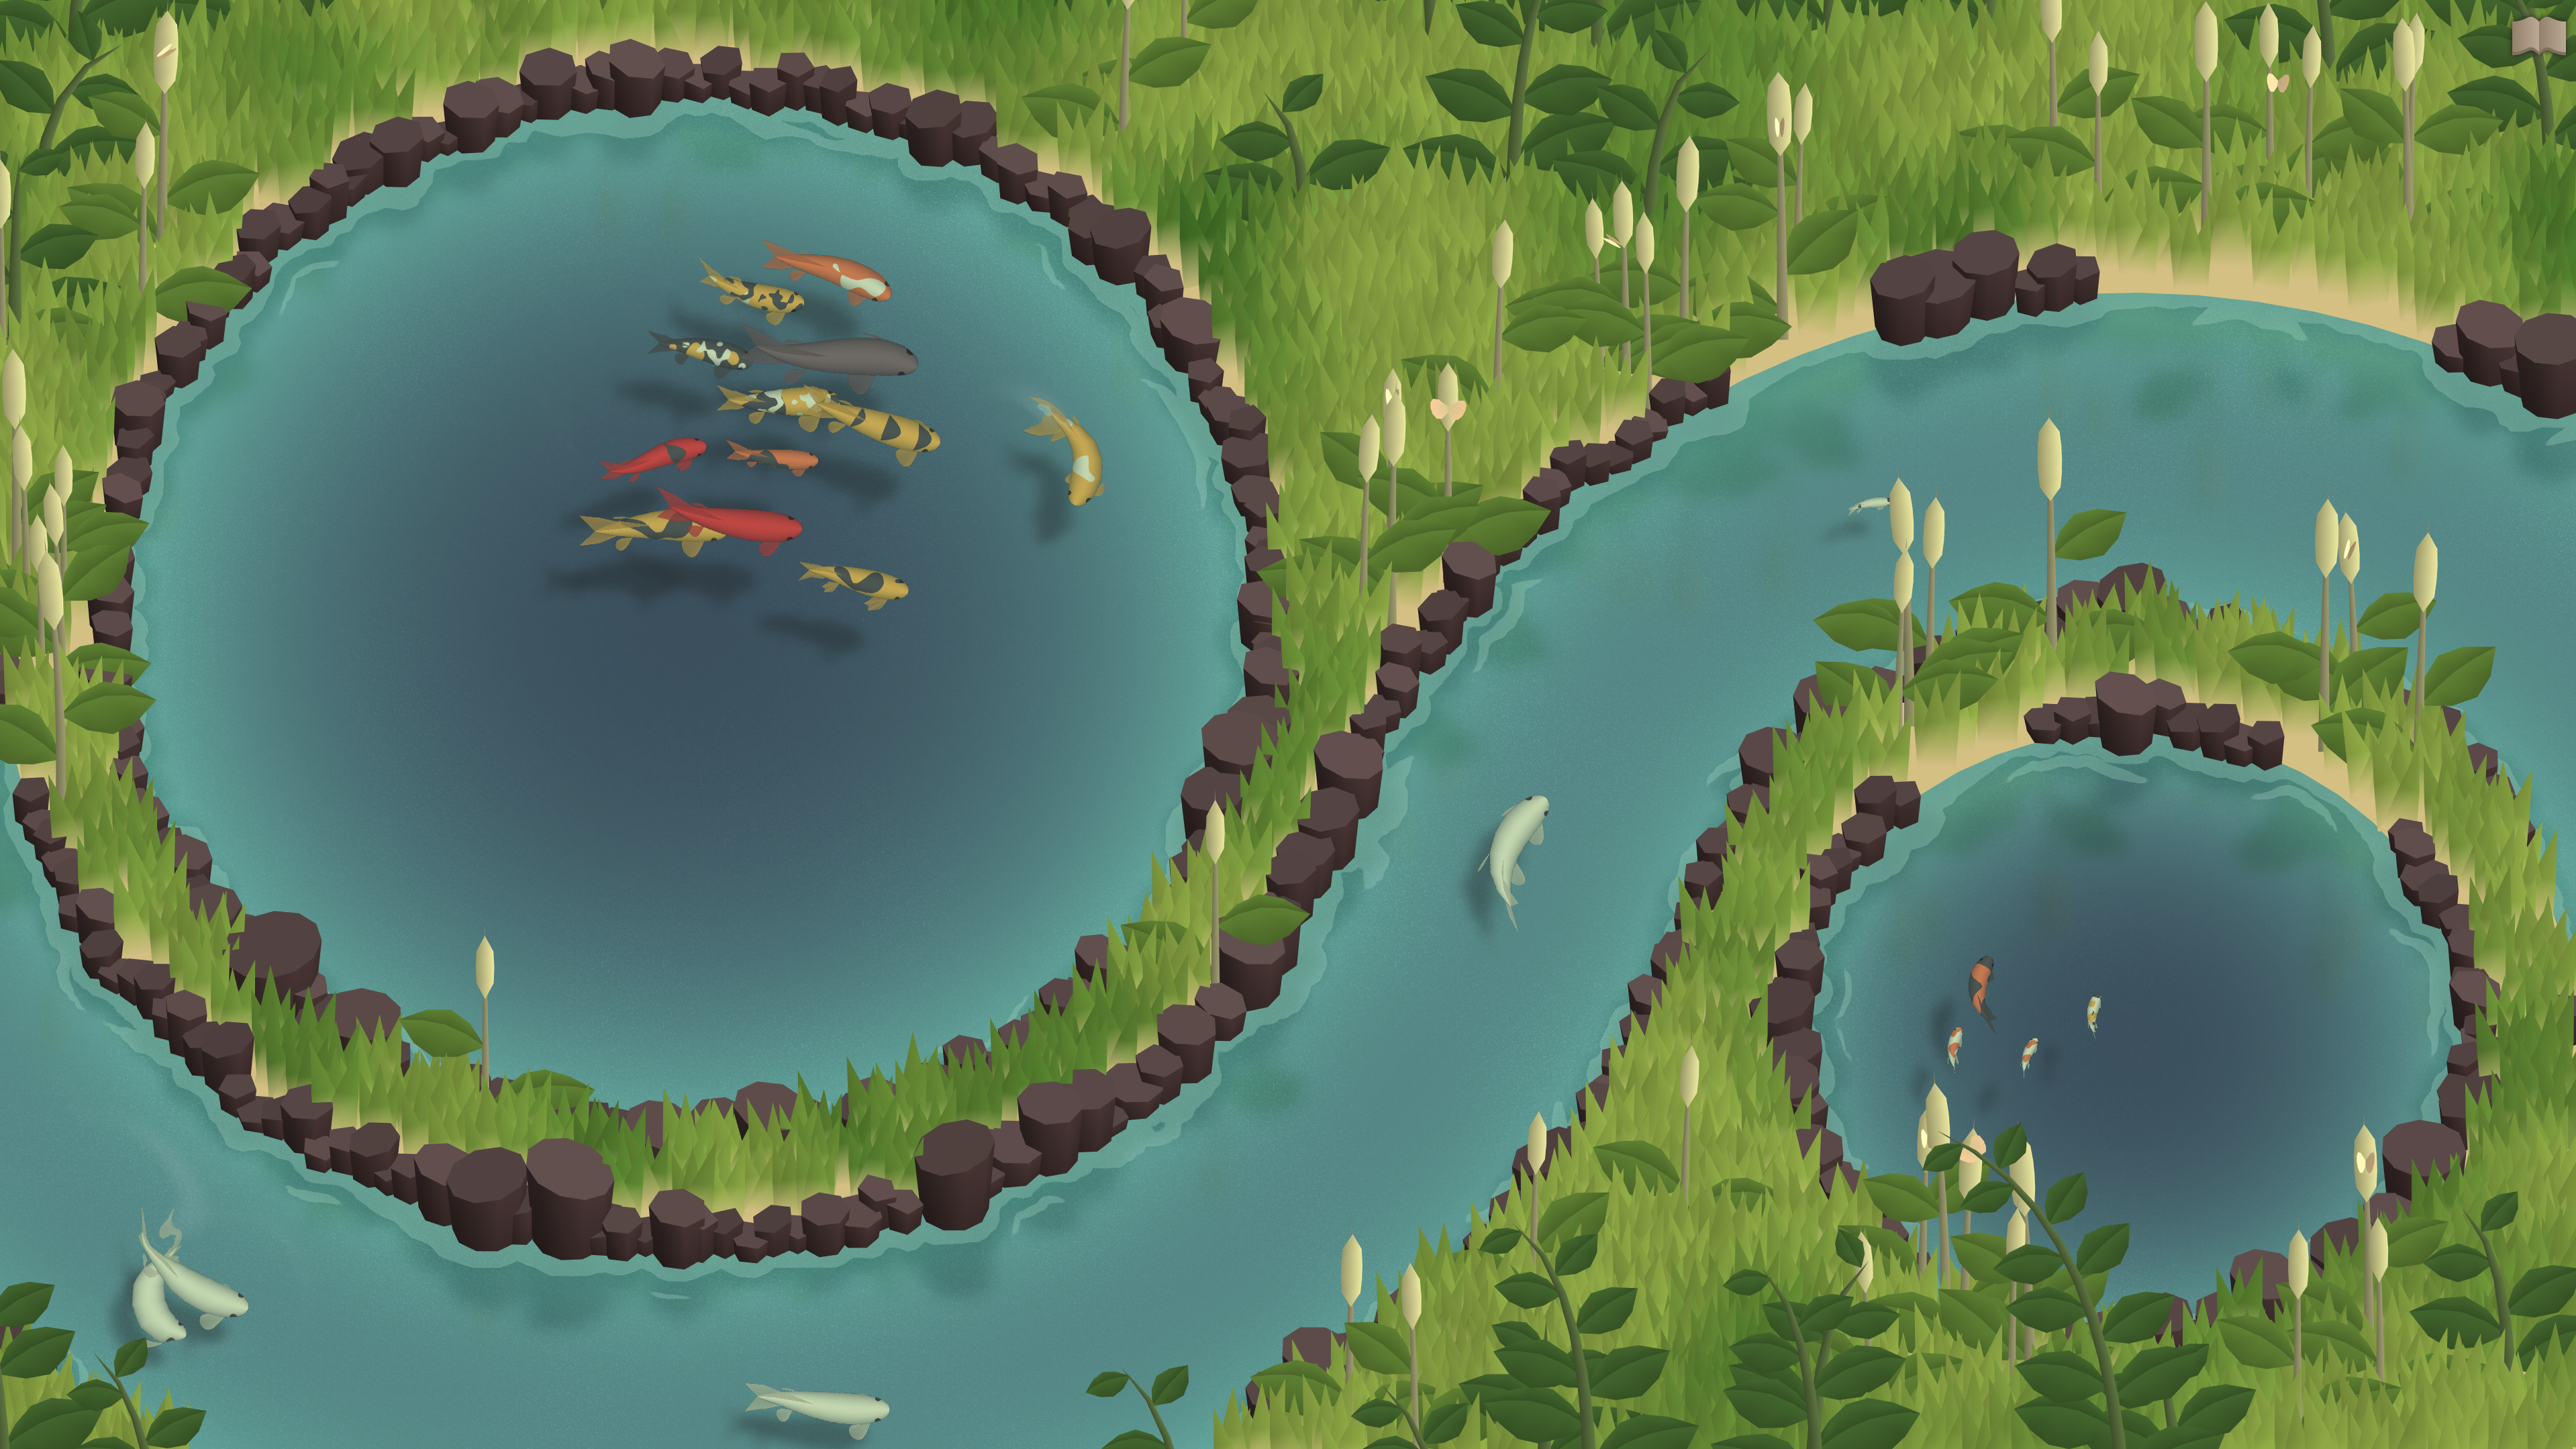 Koi Farm. Two ponds separated by a stream, all containing koi. The colors shown include white, black, yellow, orange, red, and grey in a variety of patterns.